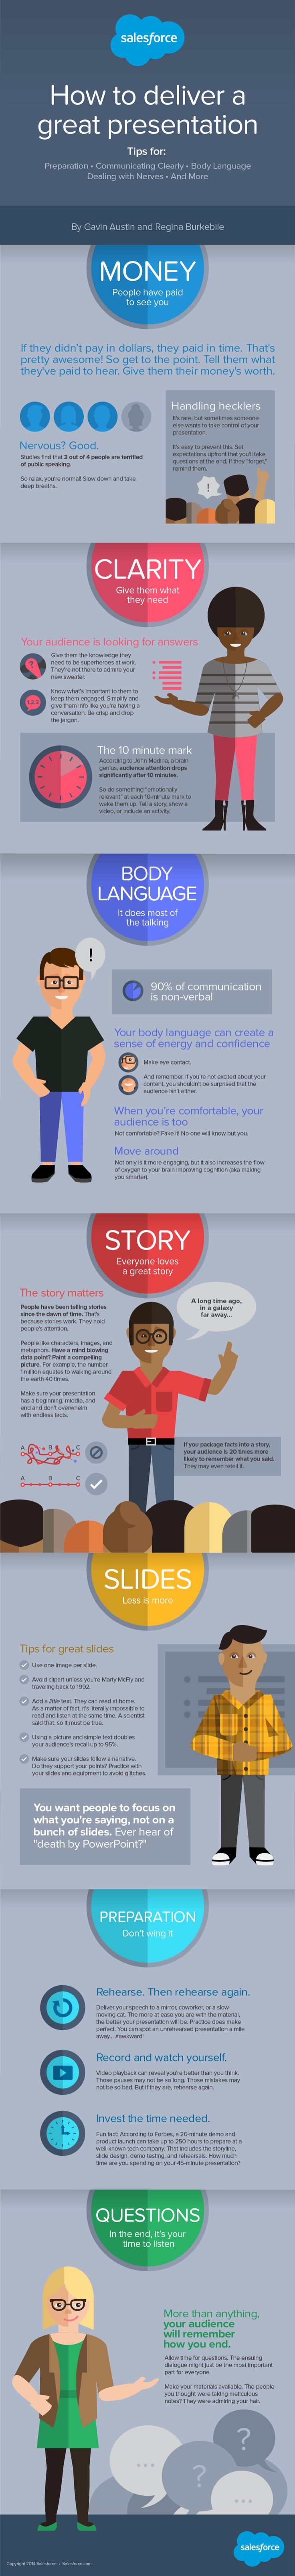 How to Deliver a Great Presentation Infographic - http://elearninginfographics.com/deliver-great-presentation-infographic/